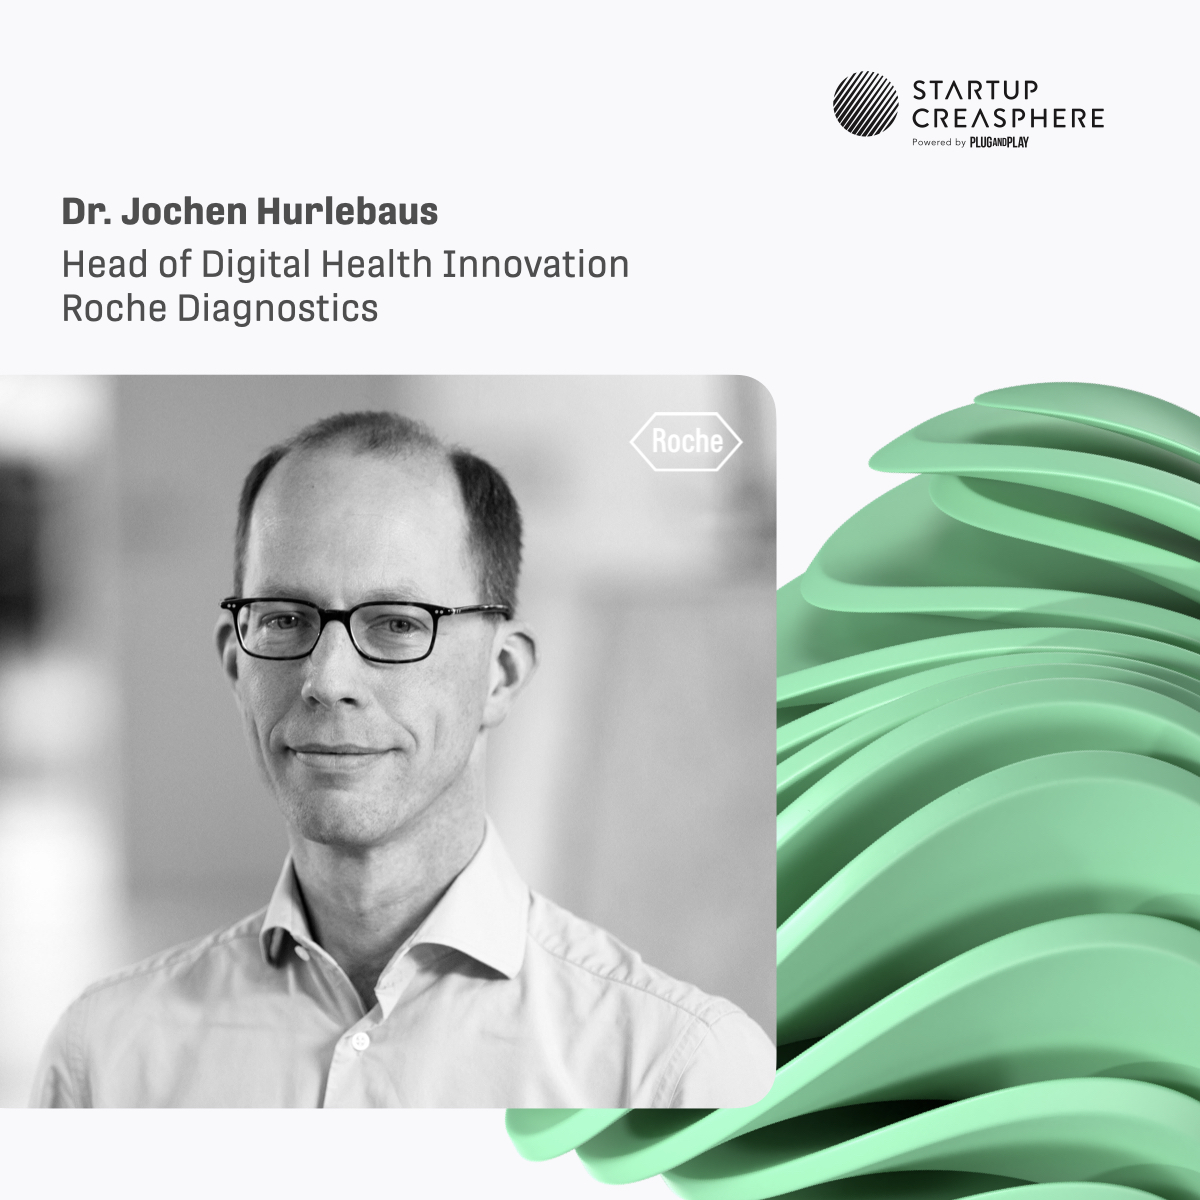 Meet Dr. @HurlebausJochen – Head of Digital Health Innovation at @RocheDia and one of the program initiators of @StrtpCreasphere – at our upcoming #Batch5 #KickOffDay! 🎤  Register for Oct 21 ⇢ https://t.co/TBHw6uzkxp  #startupcreasphere #corporatespeaker #programinitiator https://t.co/4HYvYyur83